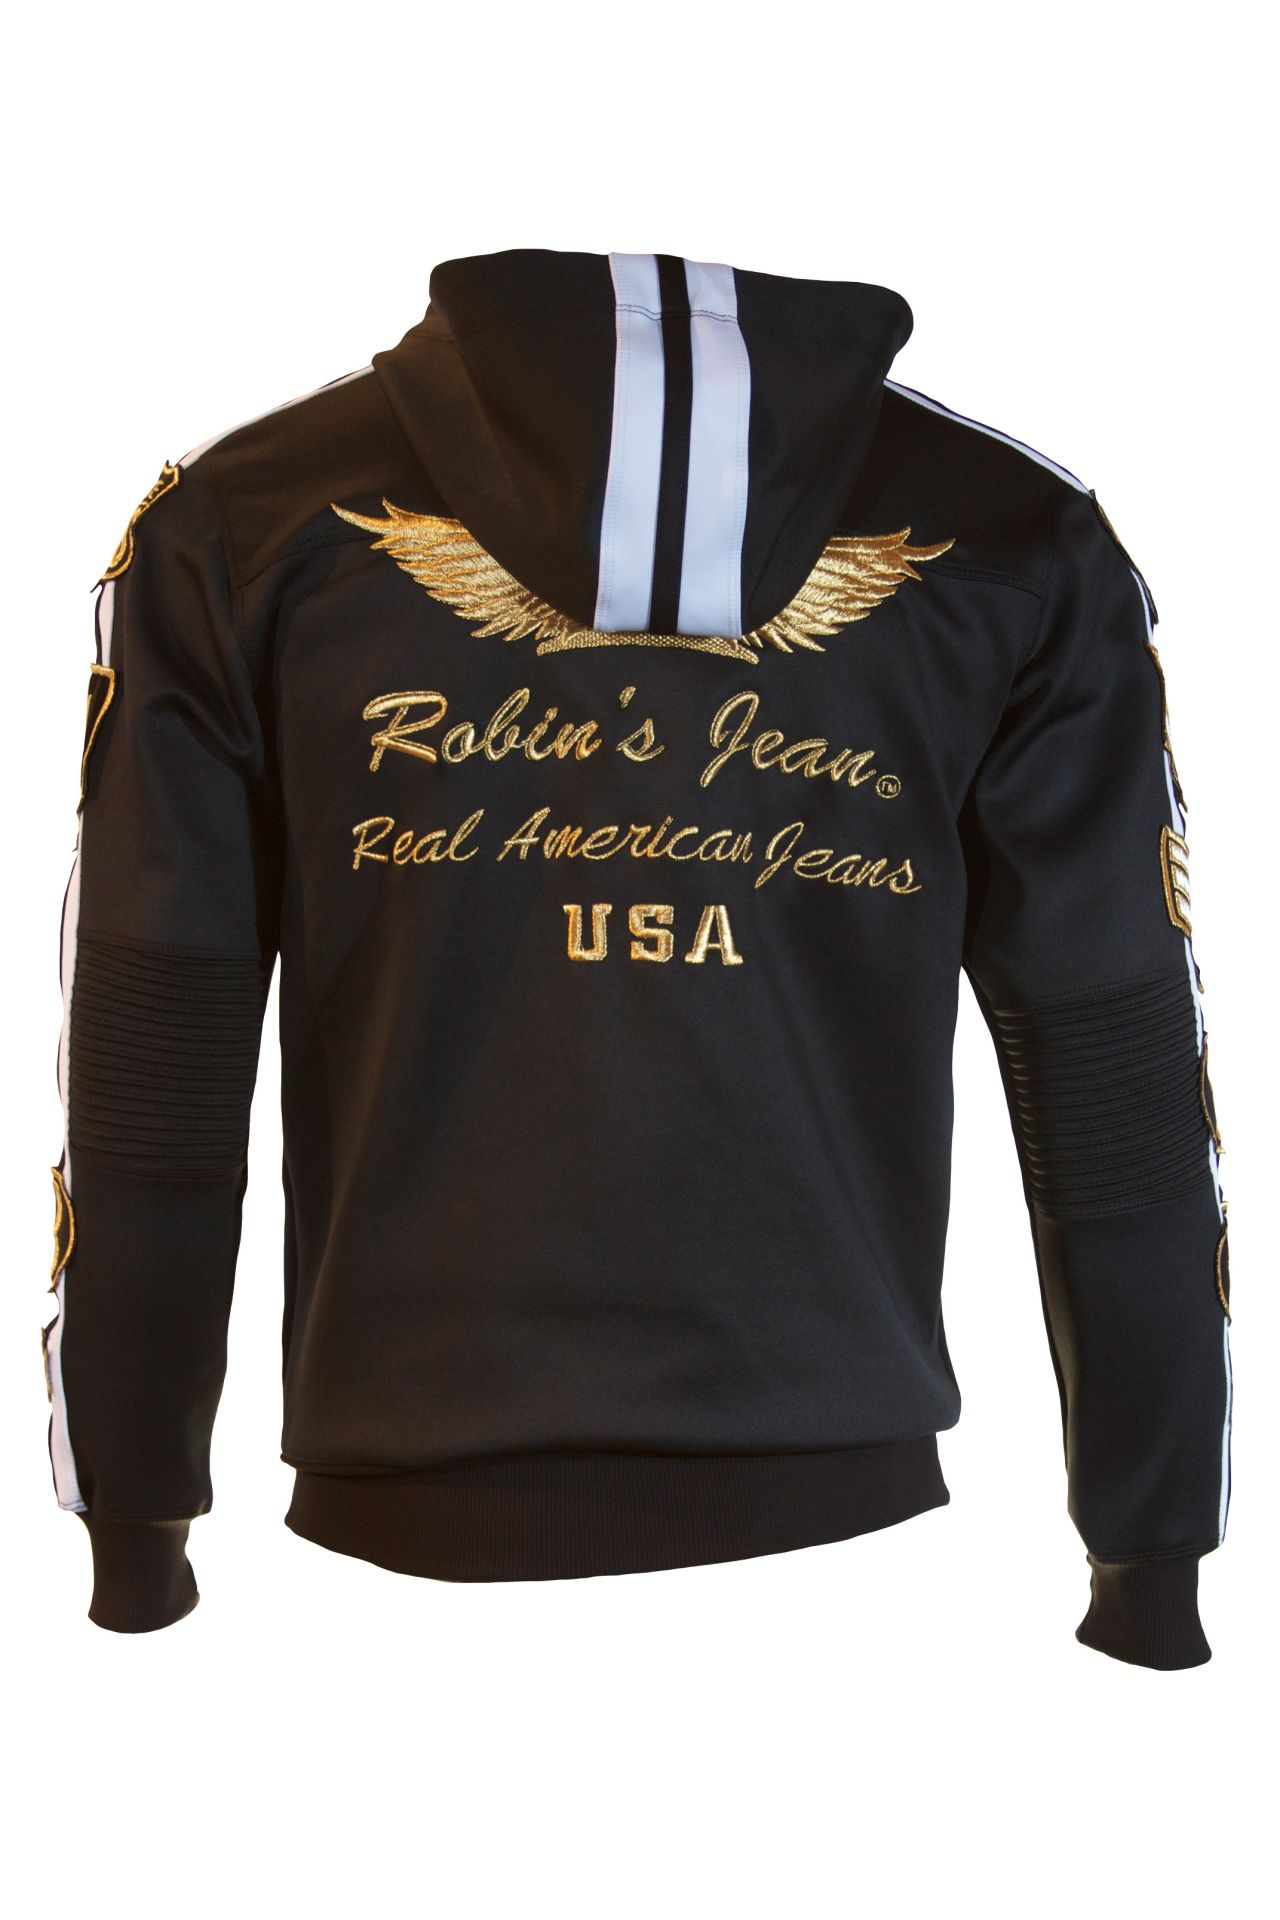 TRACK JACKET IN BLACK WITH GOLD PATCHES